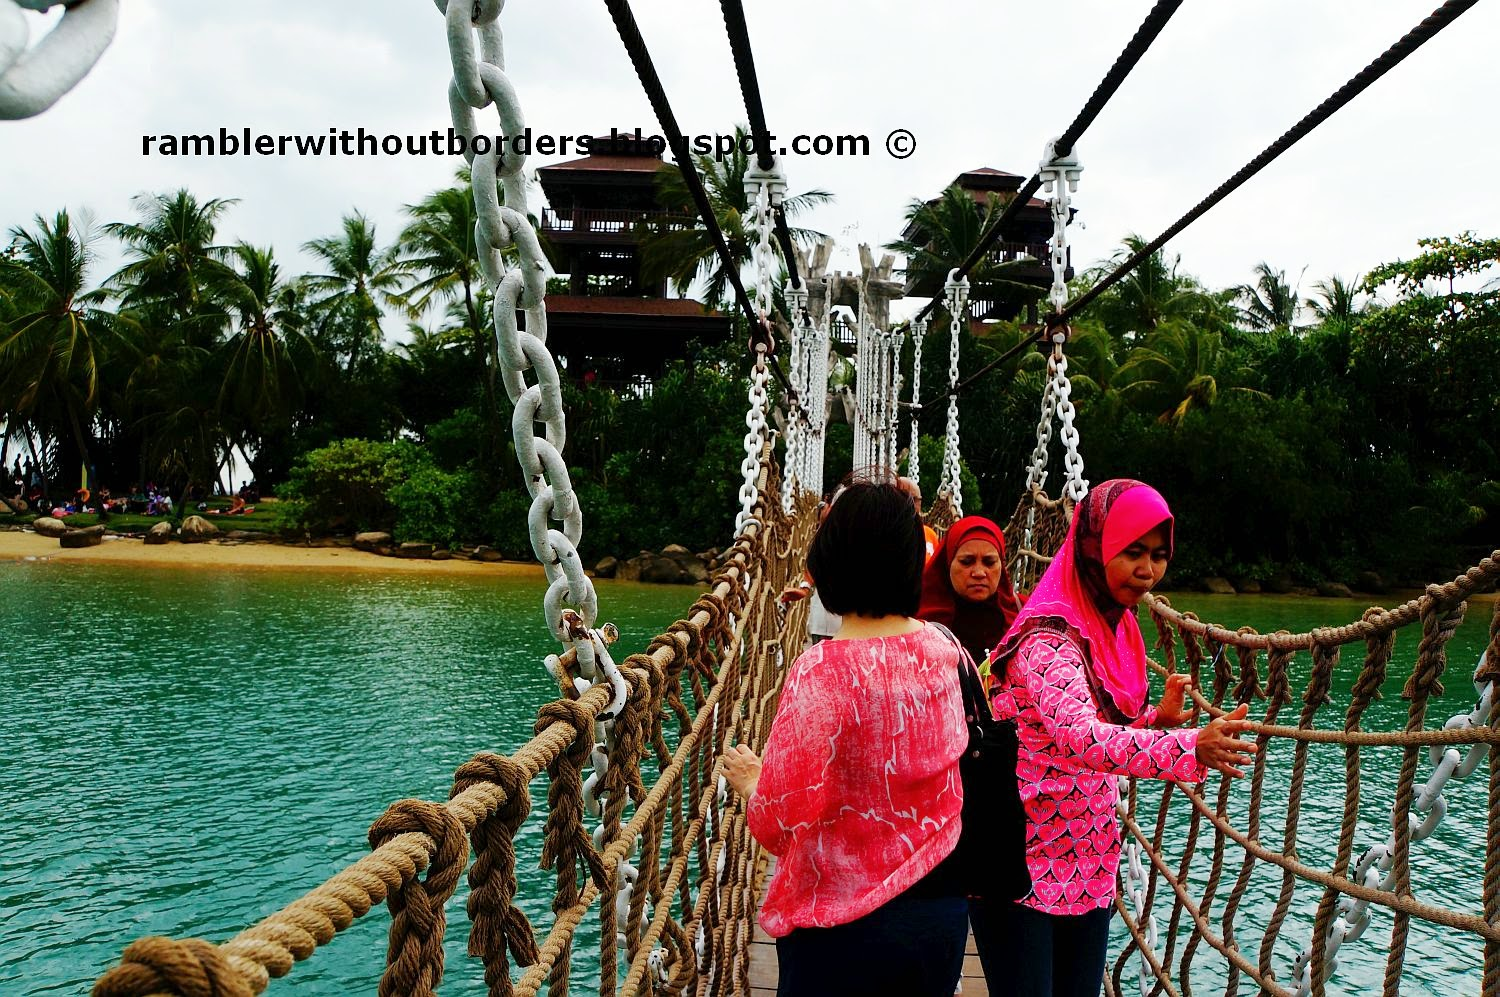 Palawan Island Suspension bridge, Sentosa, Singapore